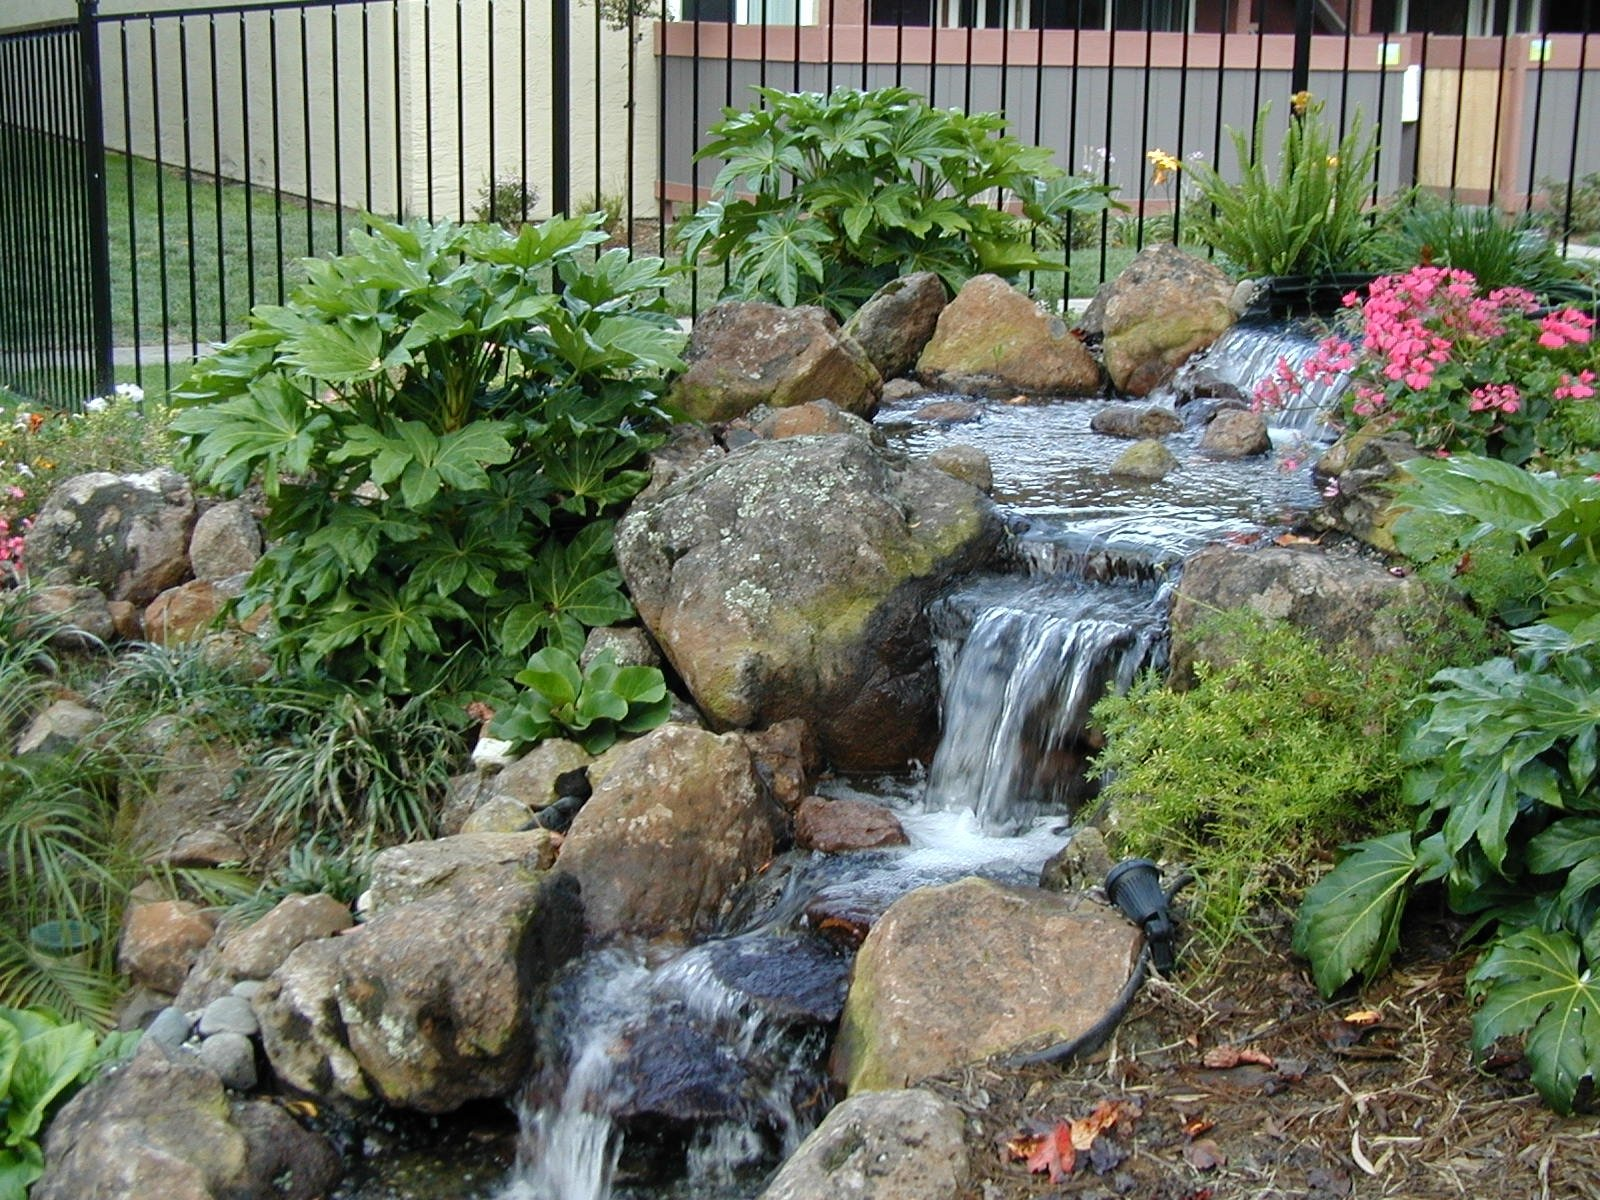 10 Perfect Water Feature Ideas For Small Gardens yard water features comely small backyard feature ideas amys office 2020